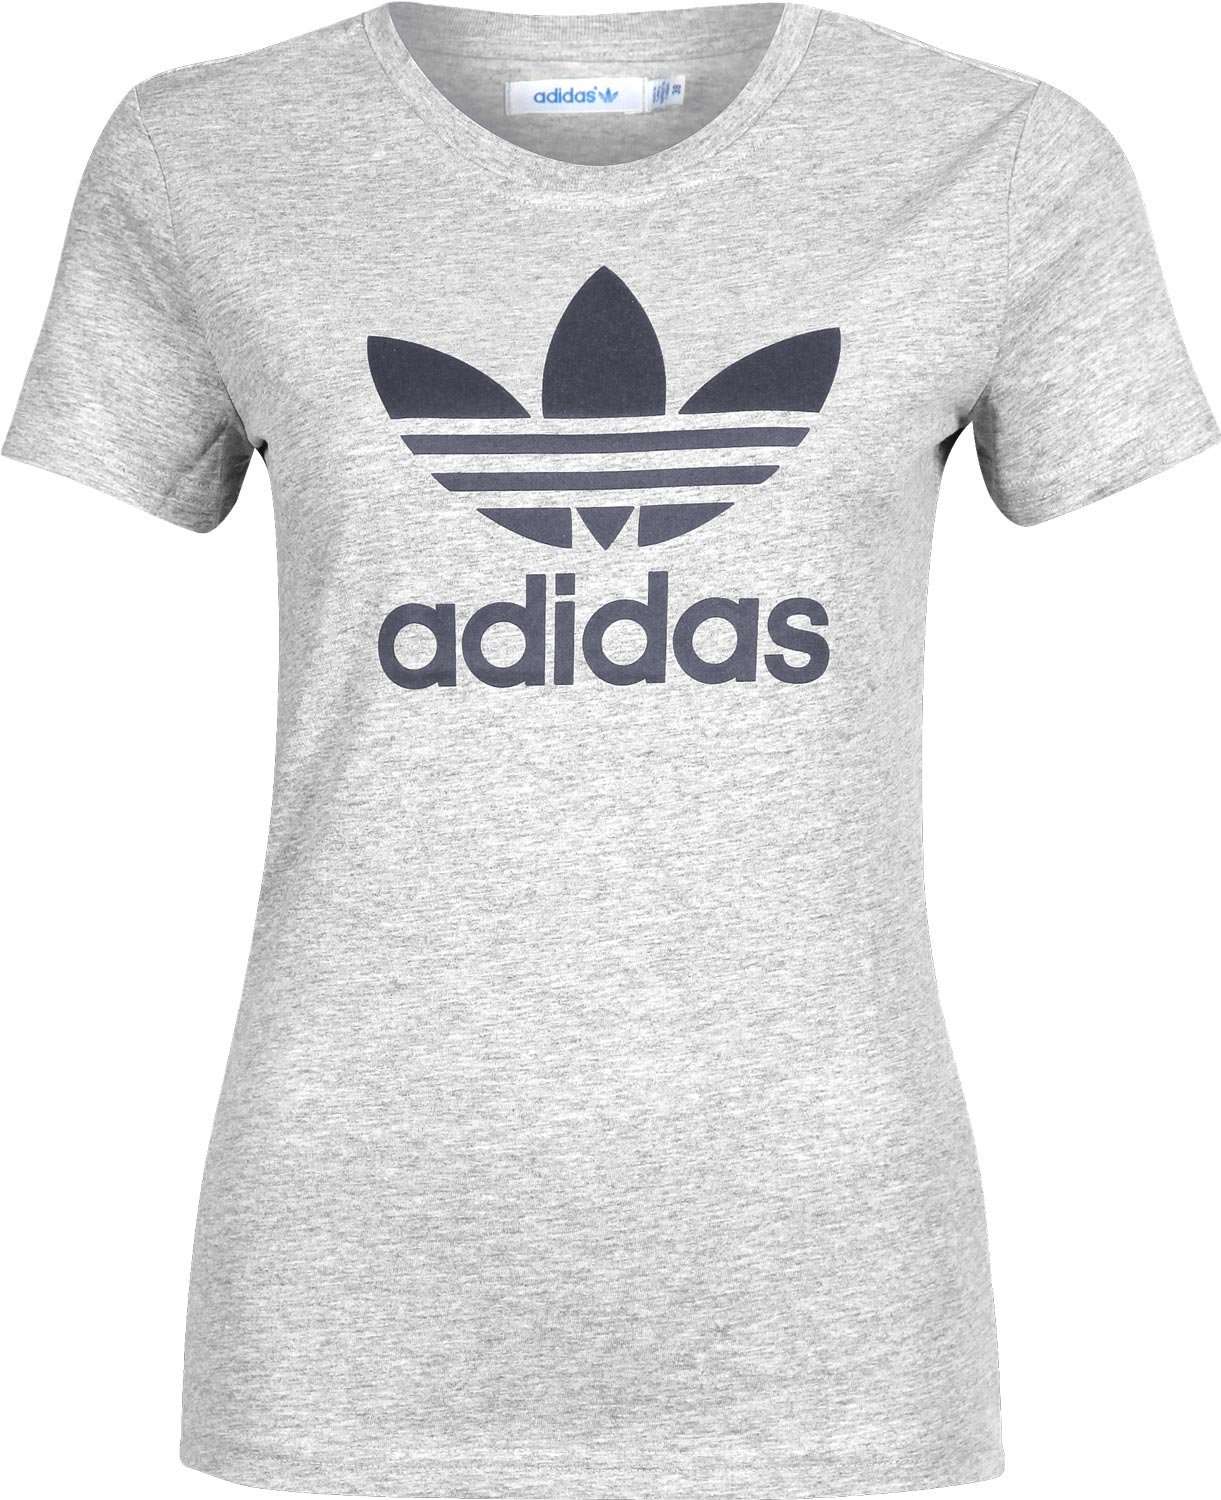 Adidas Damen Shirt Originals Trefoil Tee